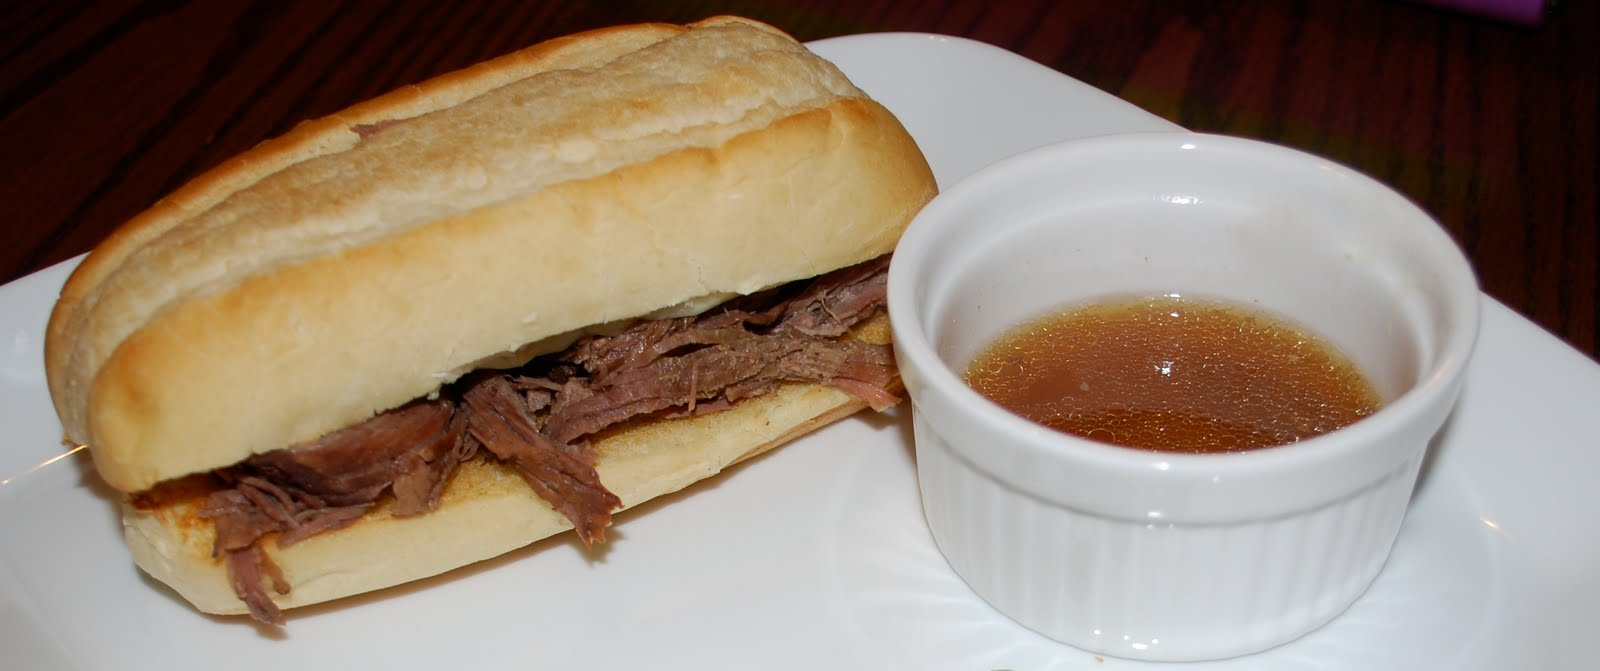 Chips And Dip Clip Art I love french dip sandwiches,